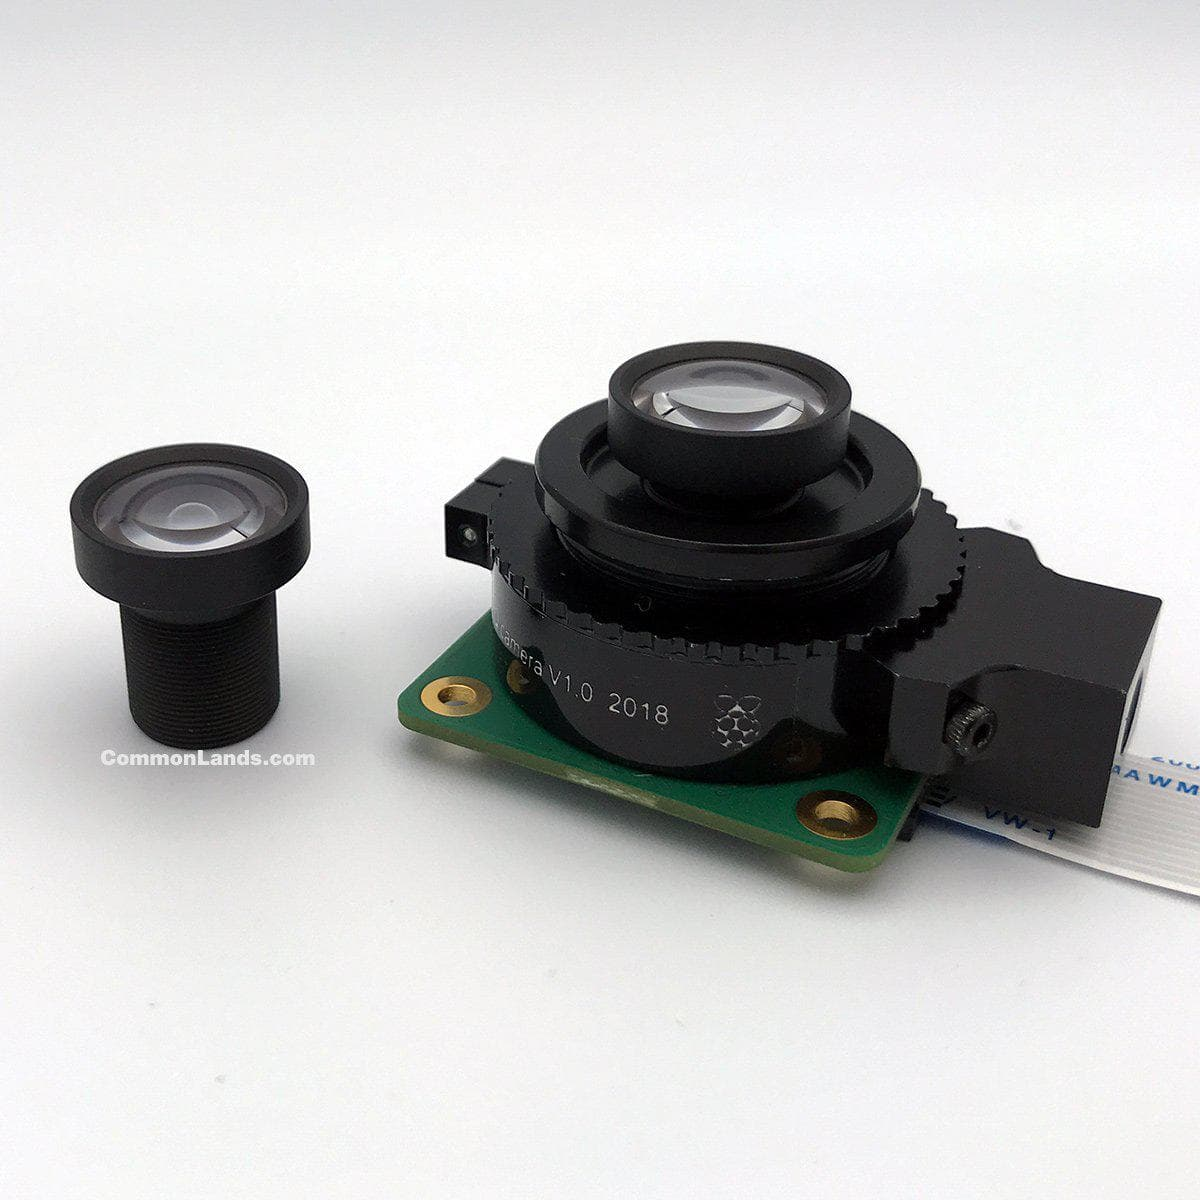 A wide angle, low distortion, 4.2mm S Mount Lens for 12MP+ M12 Cameras such as the Raspberry Pi HQ.